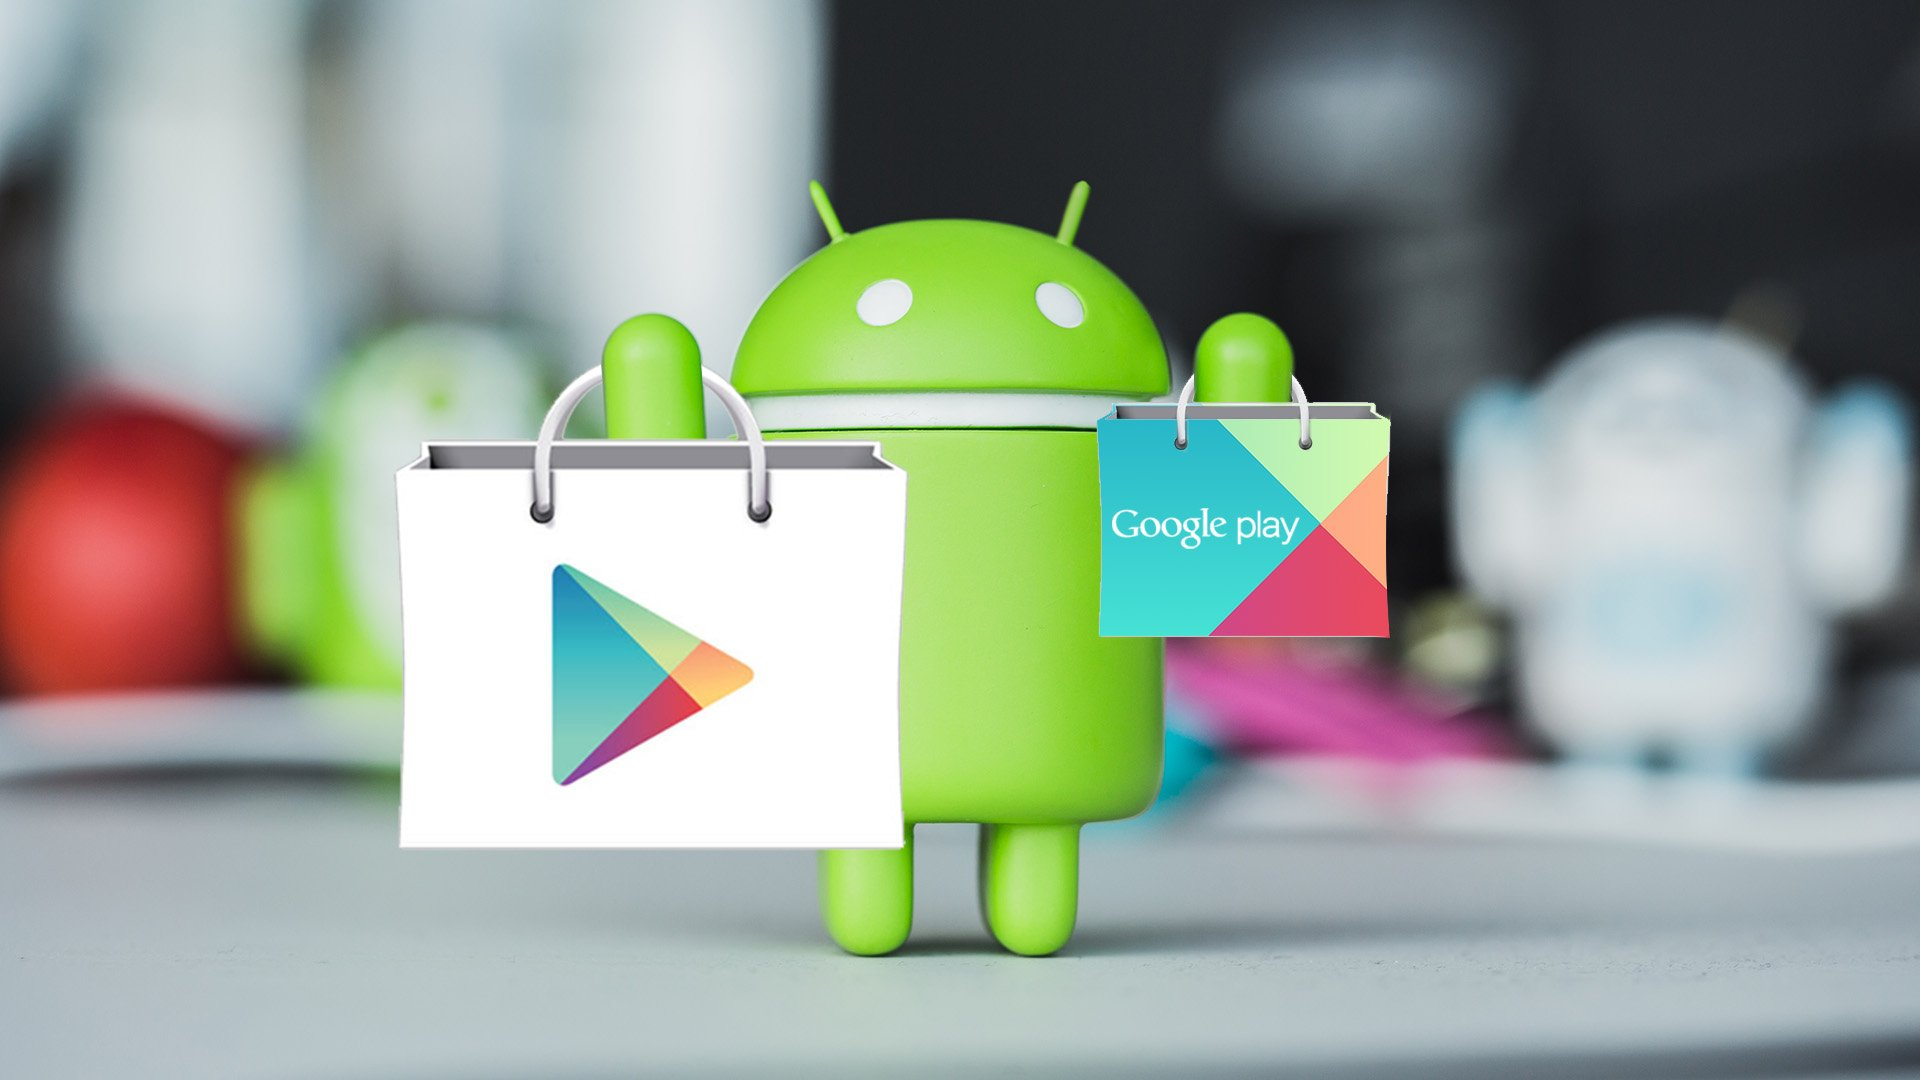 google play awards 2017 here are googles picks for the best apps on android androidpit